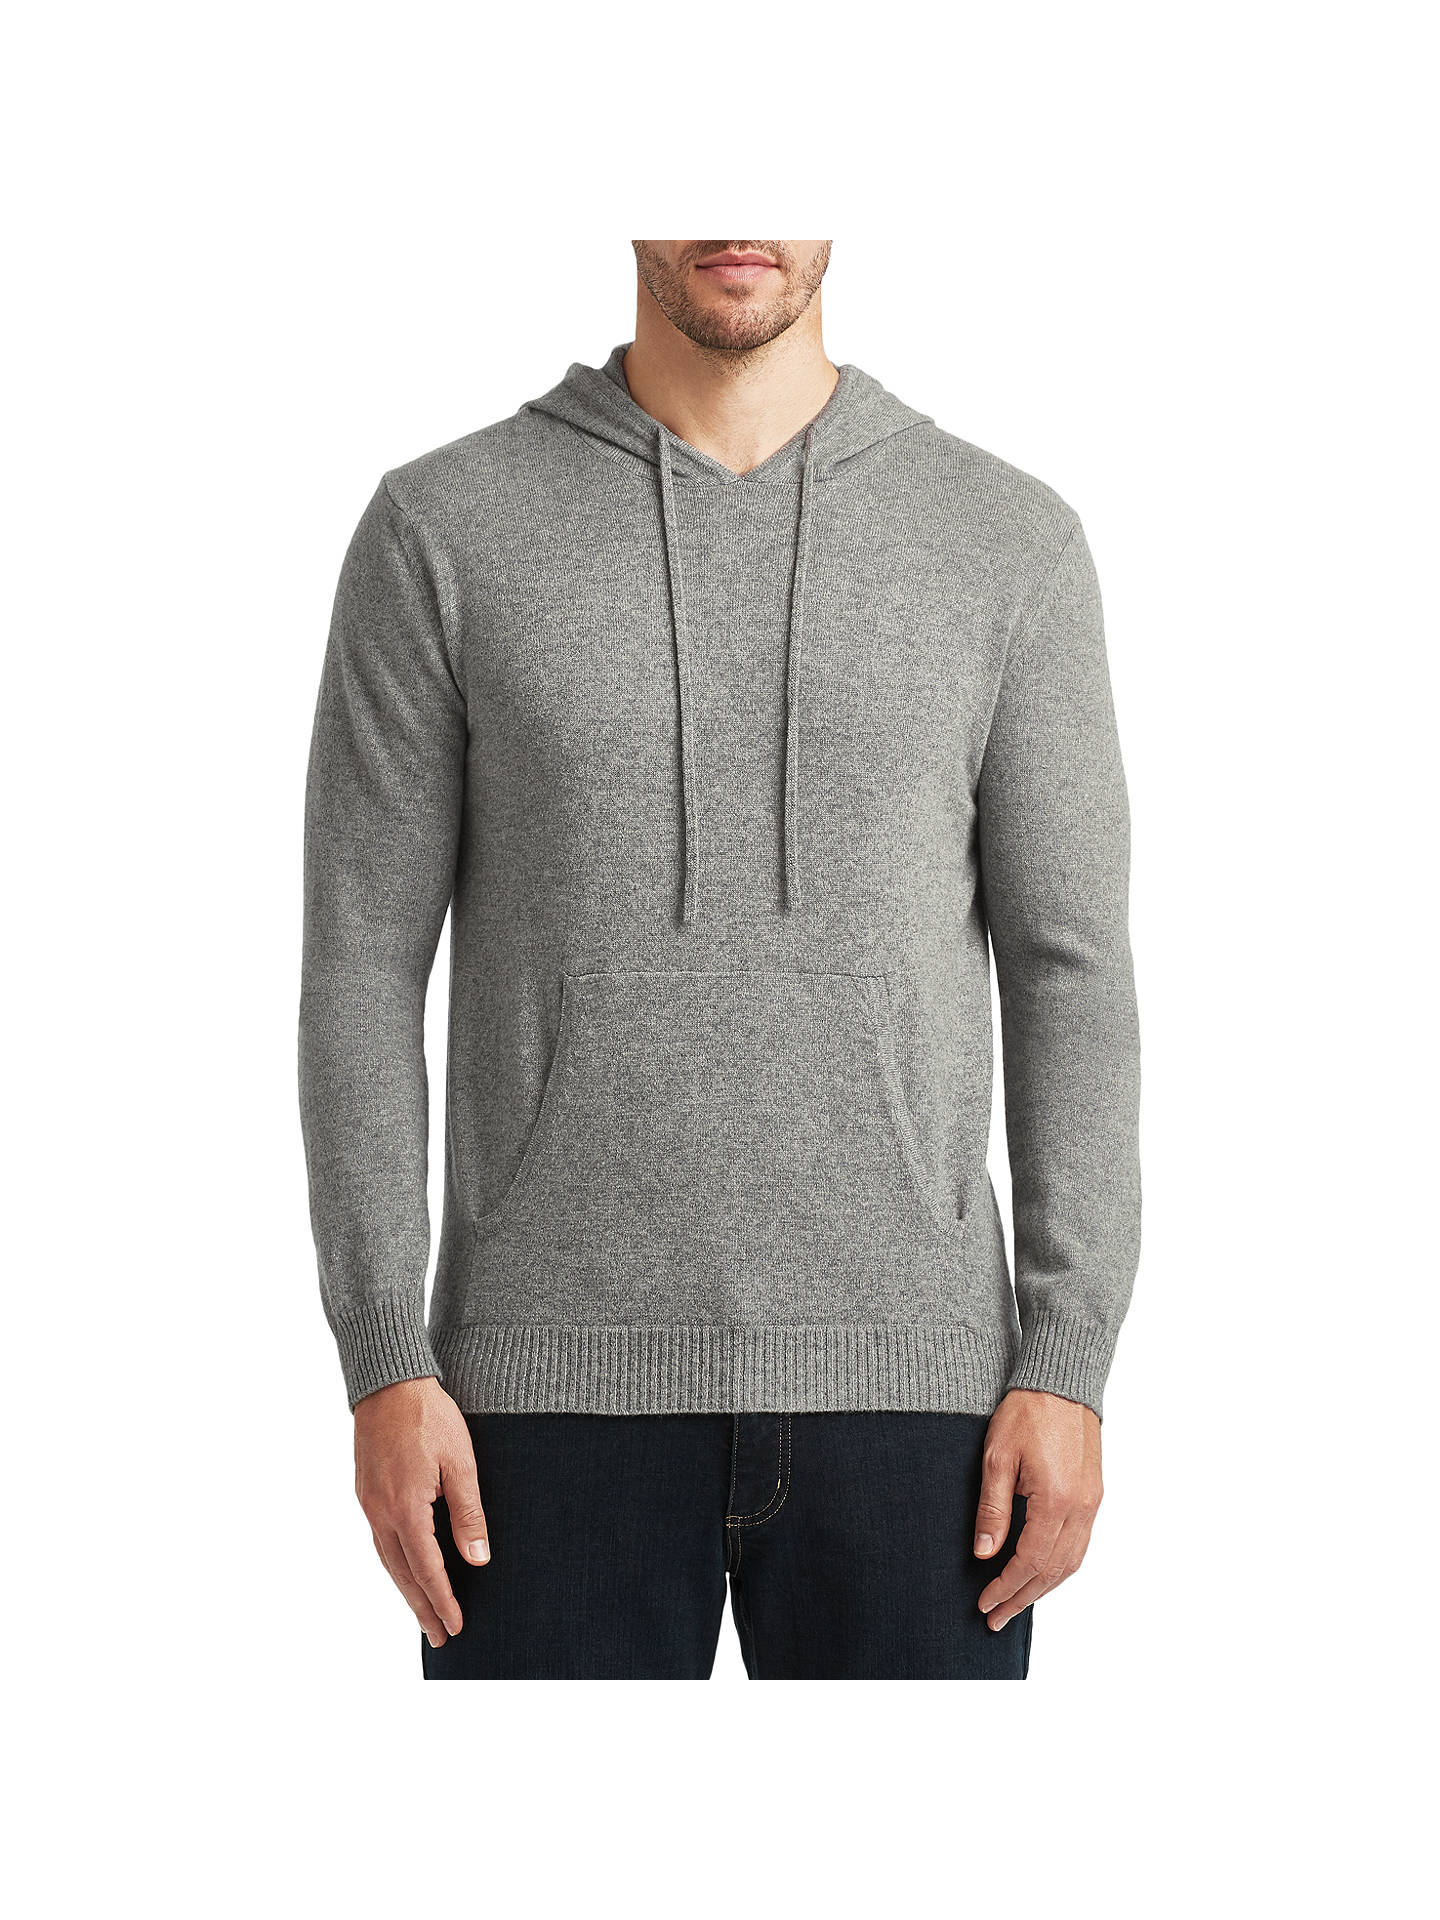 Buy John Lewis Made in Italy Premium Cashmere Hoodie, Grey, S Online at johnlewis.com